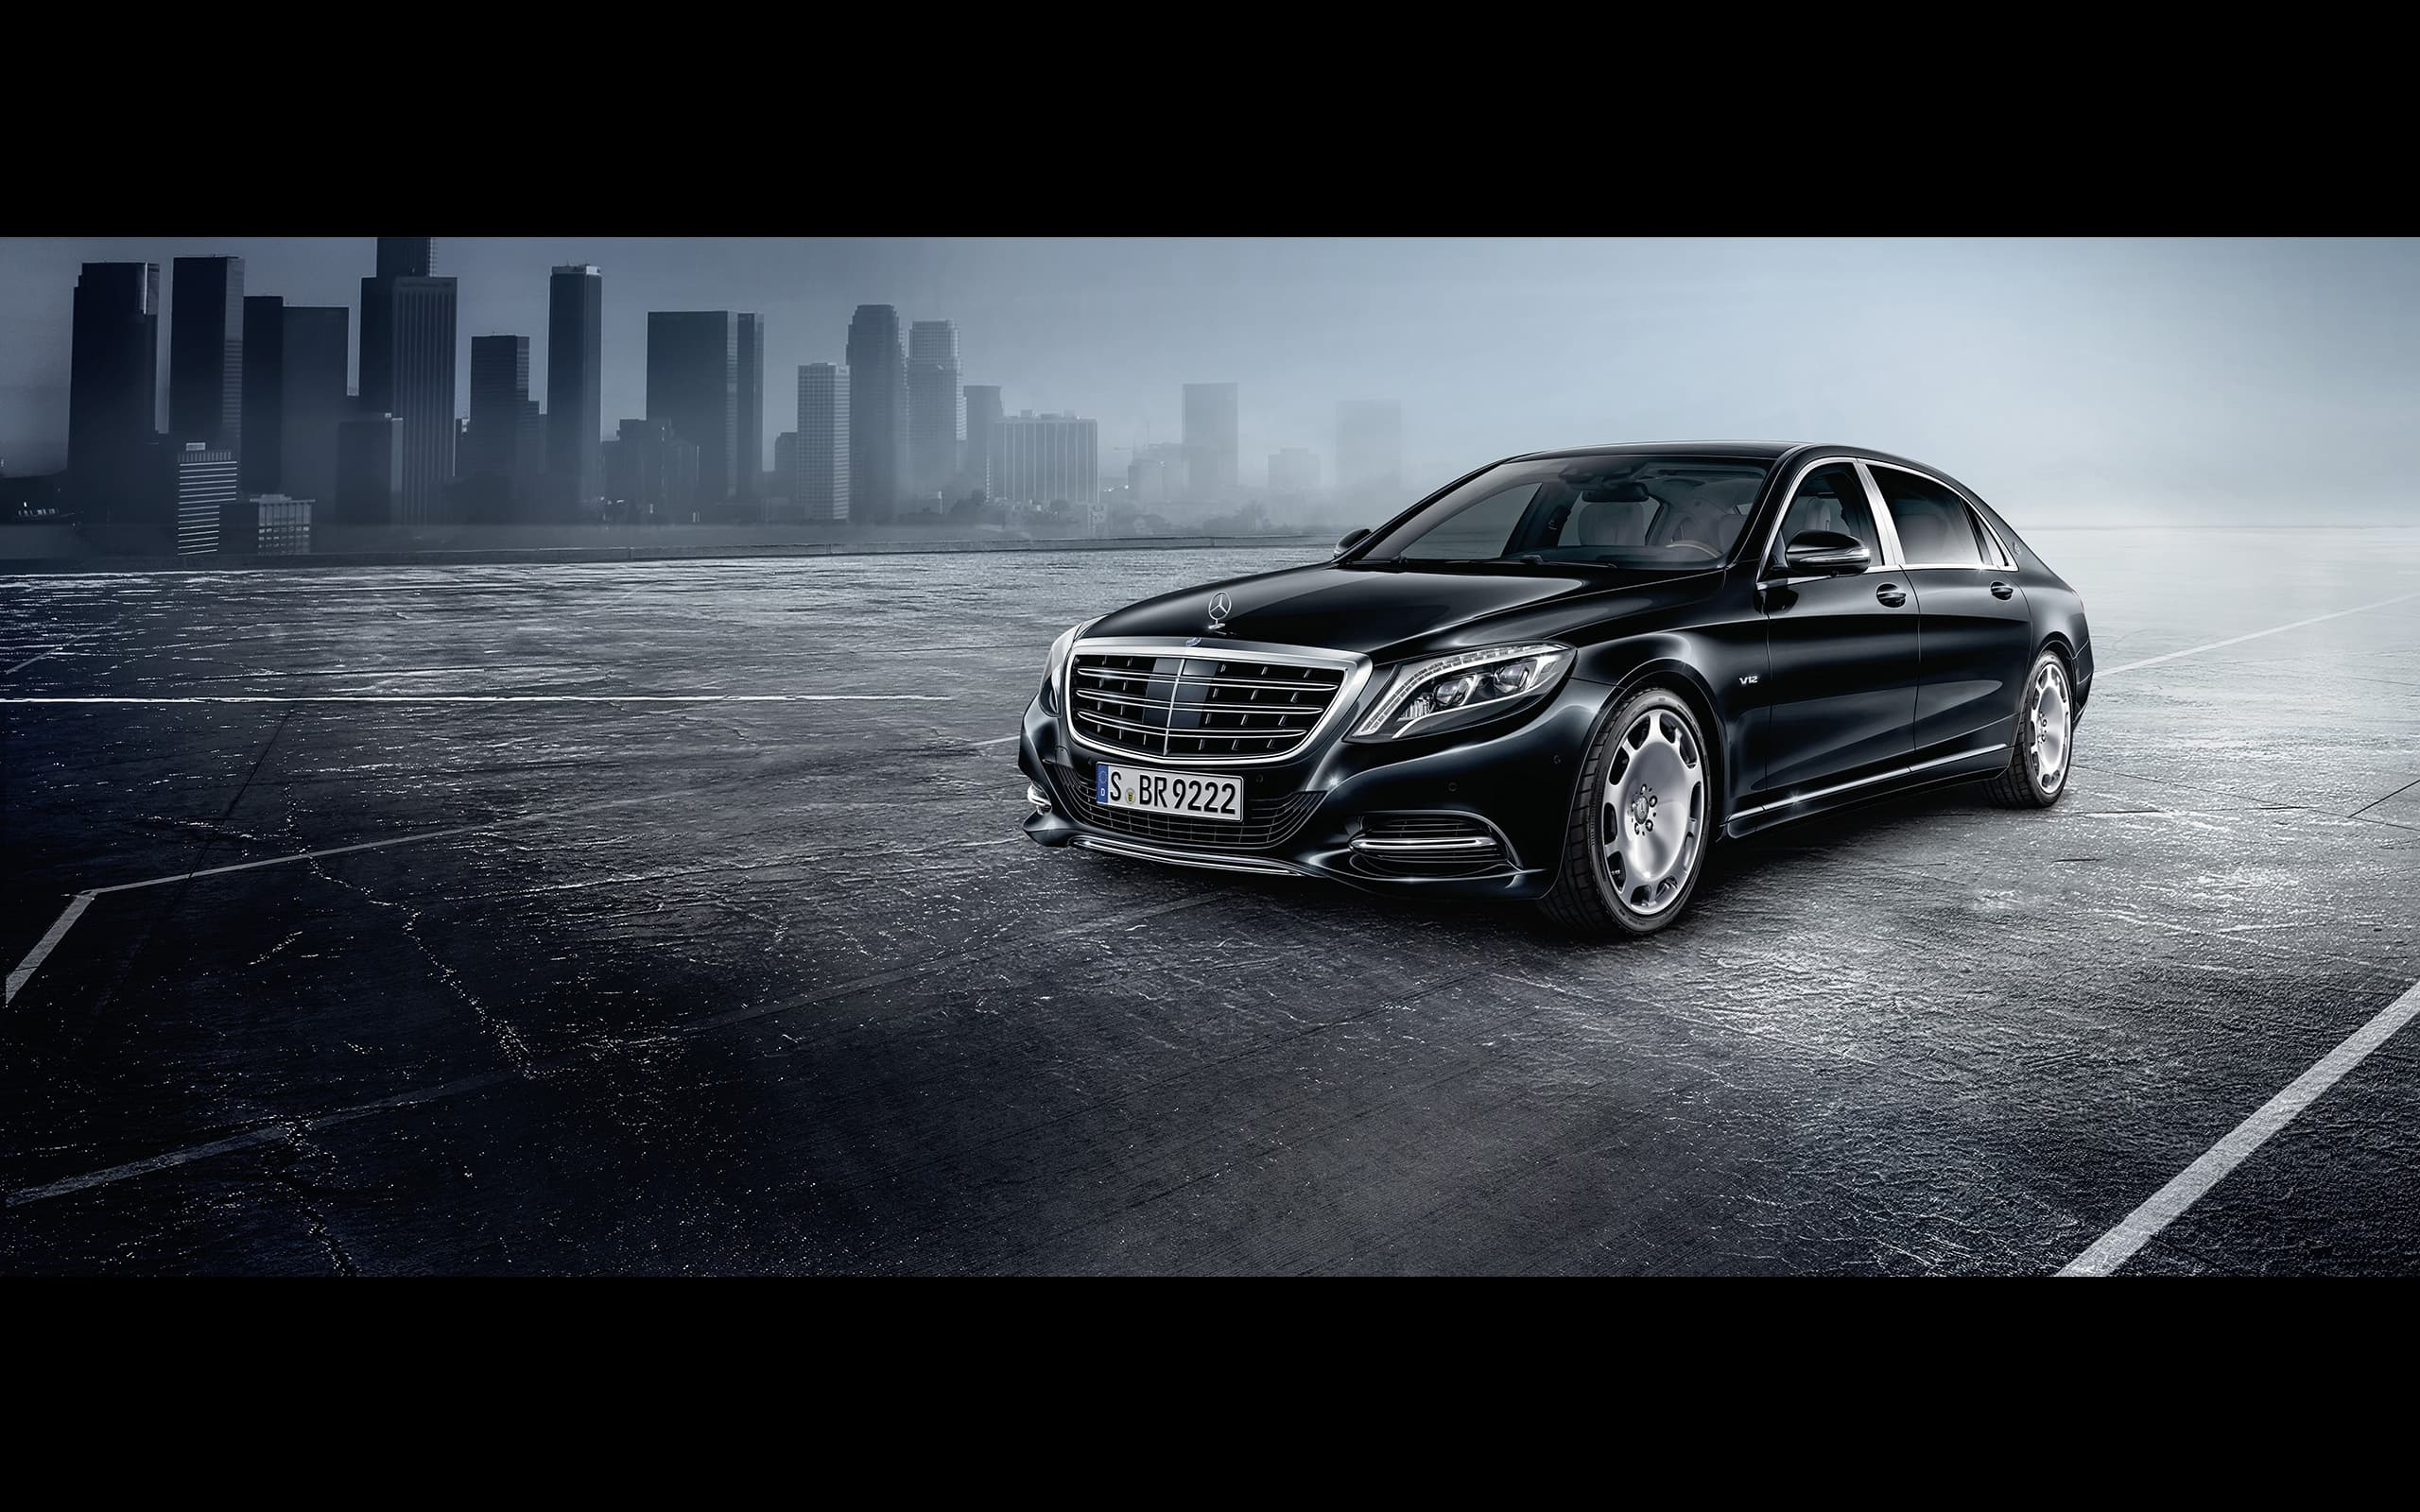 2016 Mercedes Maybach S600 Guard Wallpapers Photos High 2560x1600